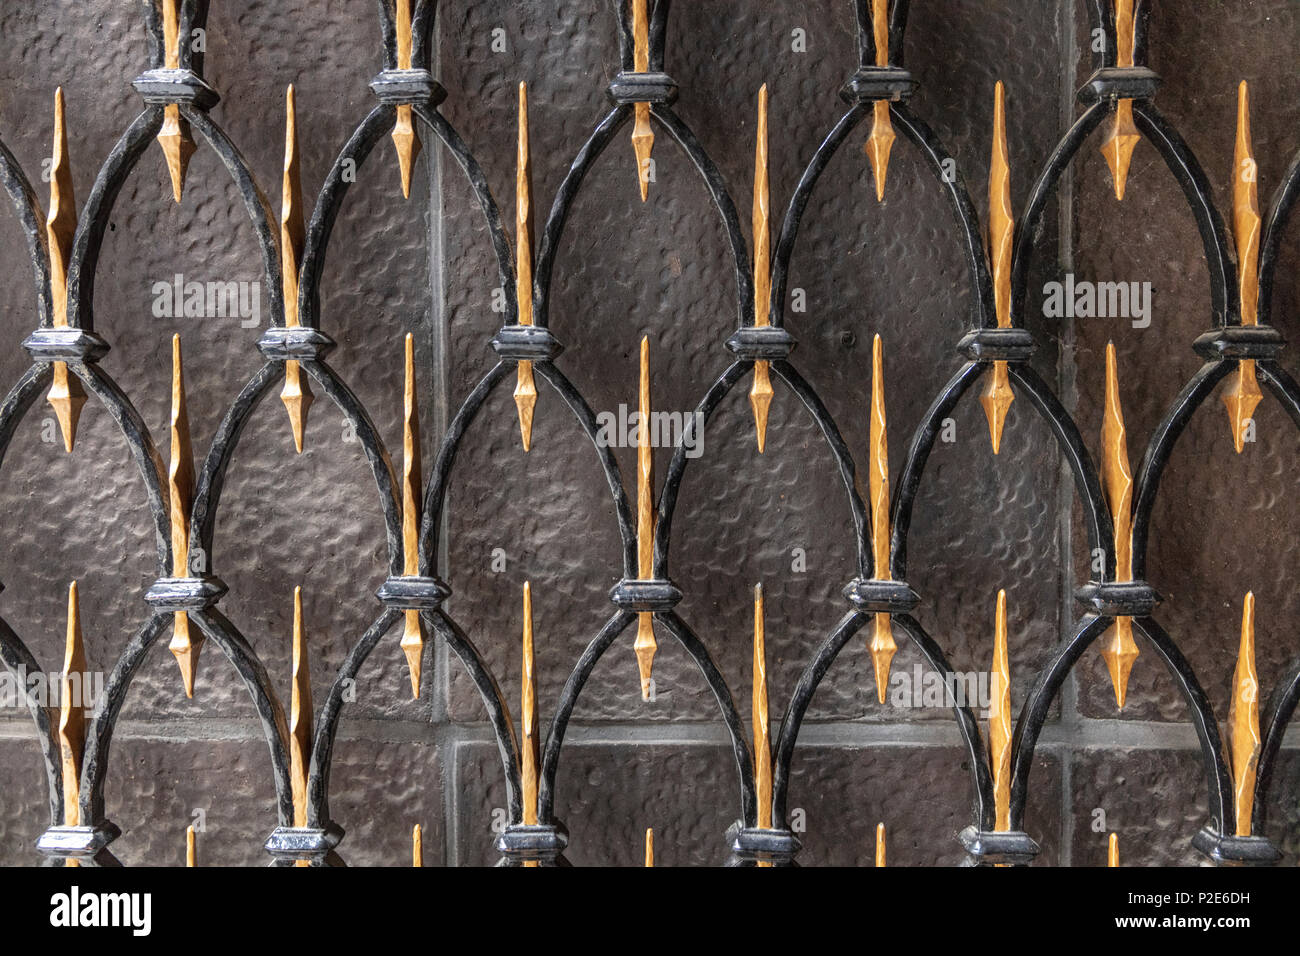 Ornamental Grille at entrance to Chilehaus, Altstadt, Hamburg, Germany - Stock Image